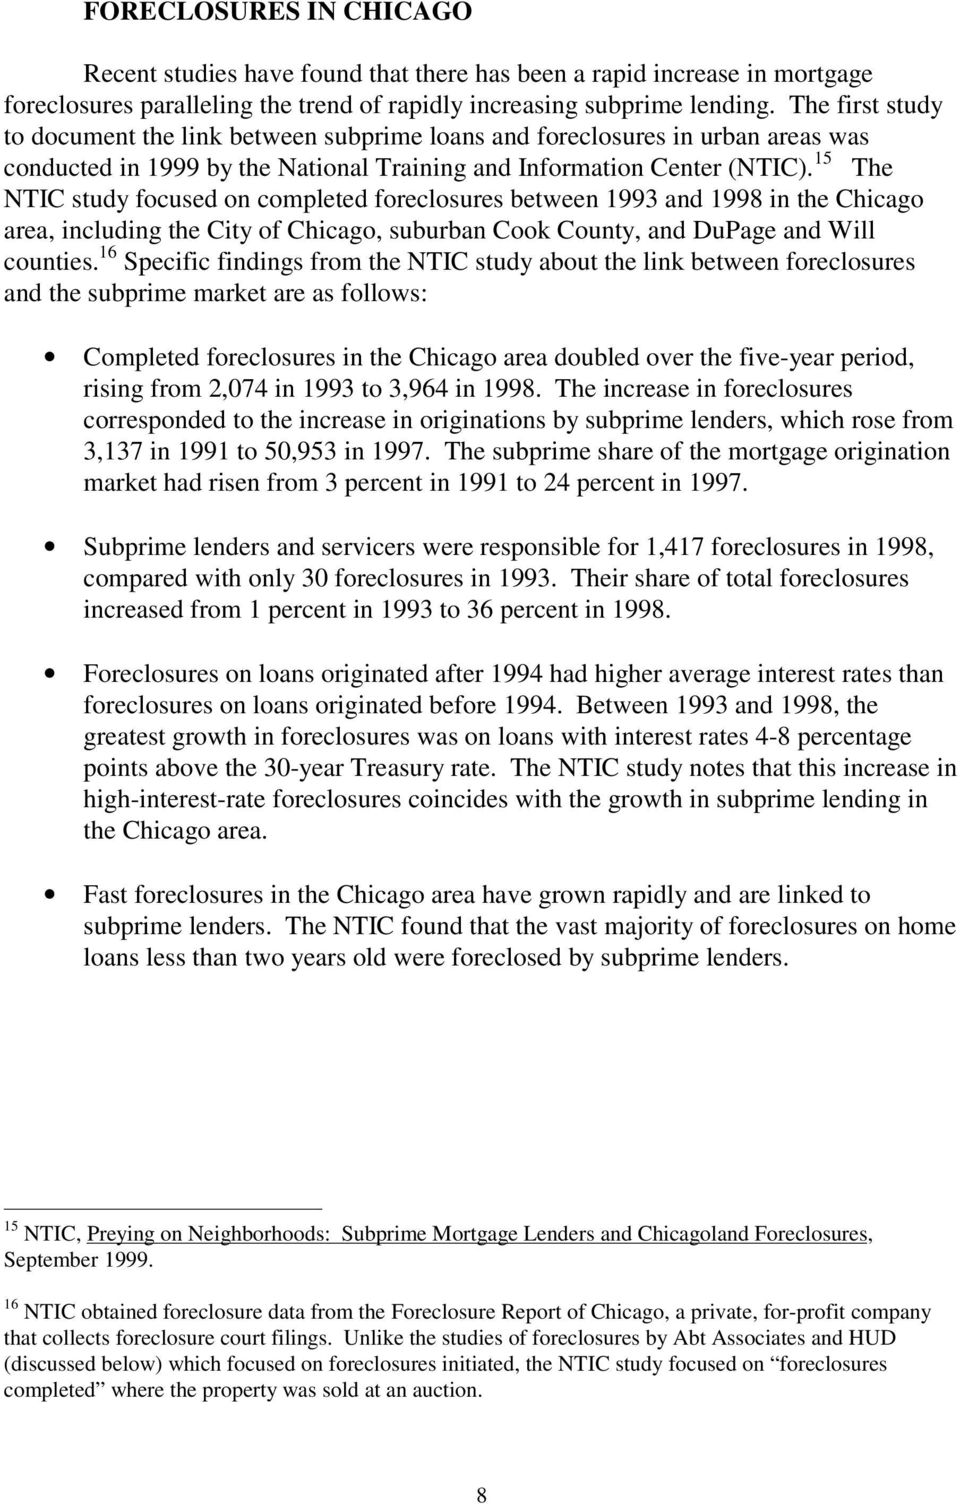 15 The NTIC study focused on completed foreclosures between 1993 and 1998 in the Chicago area, including the City of Chicago, suburban Cook County, and DuPage and Will counties.